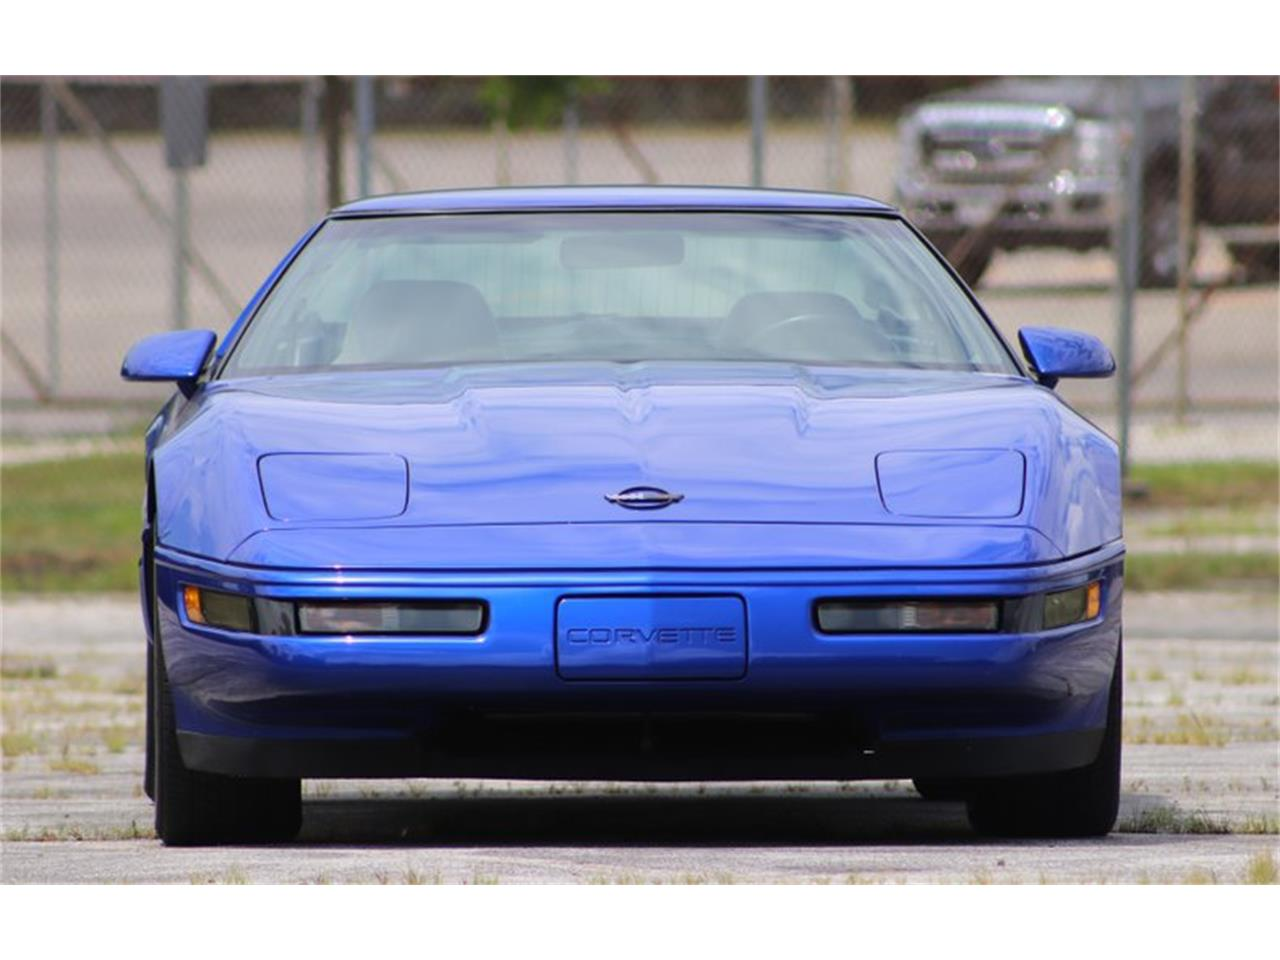 1995 Chevrolet Corvette for sale in Alsip, IL – photo 77